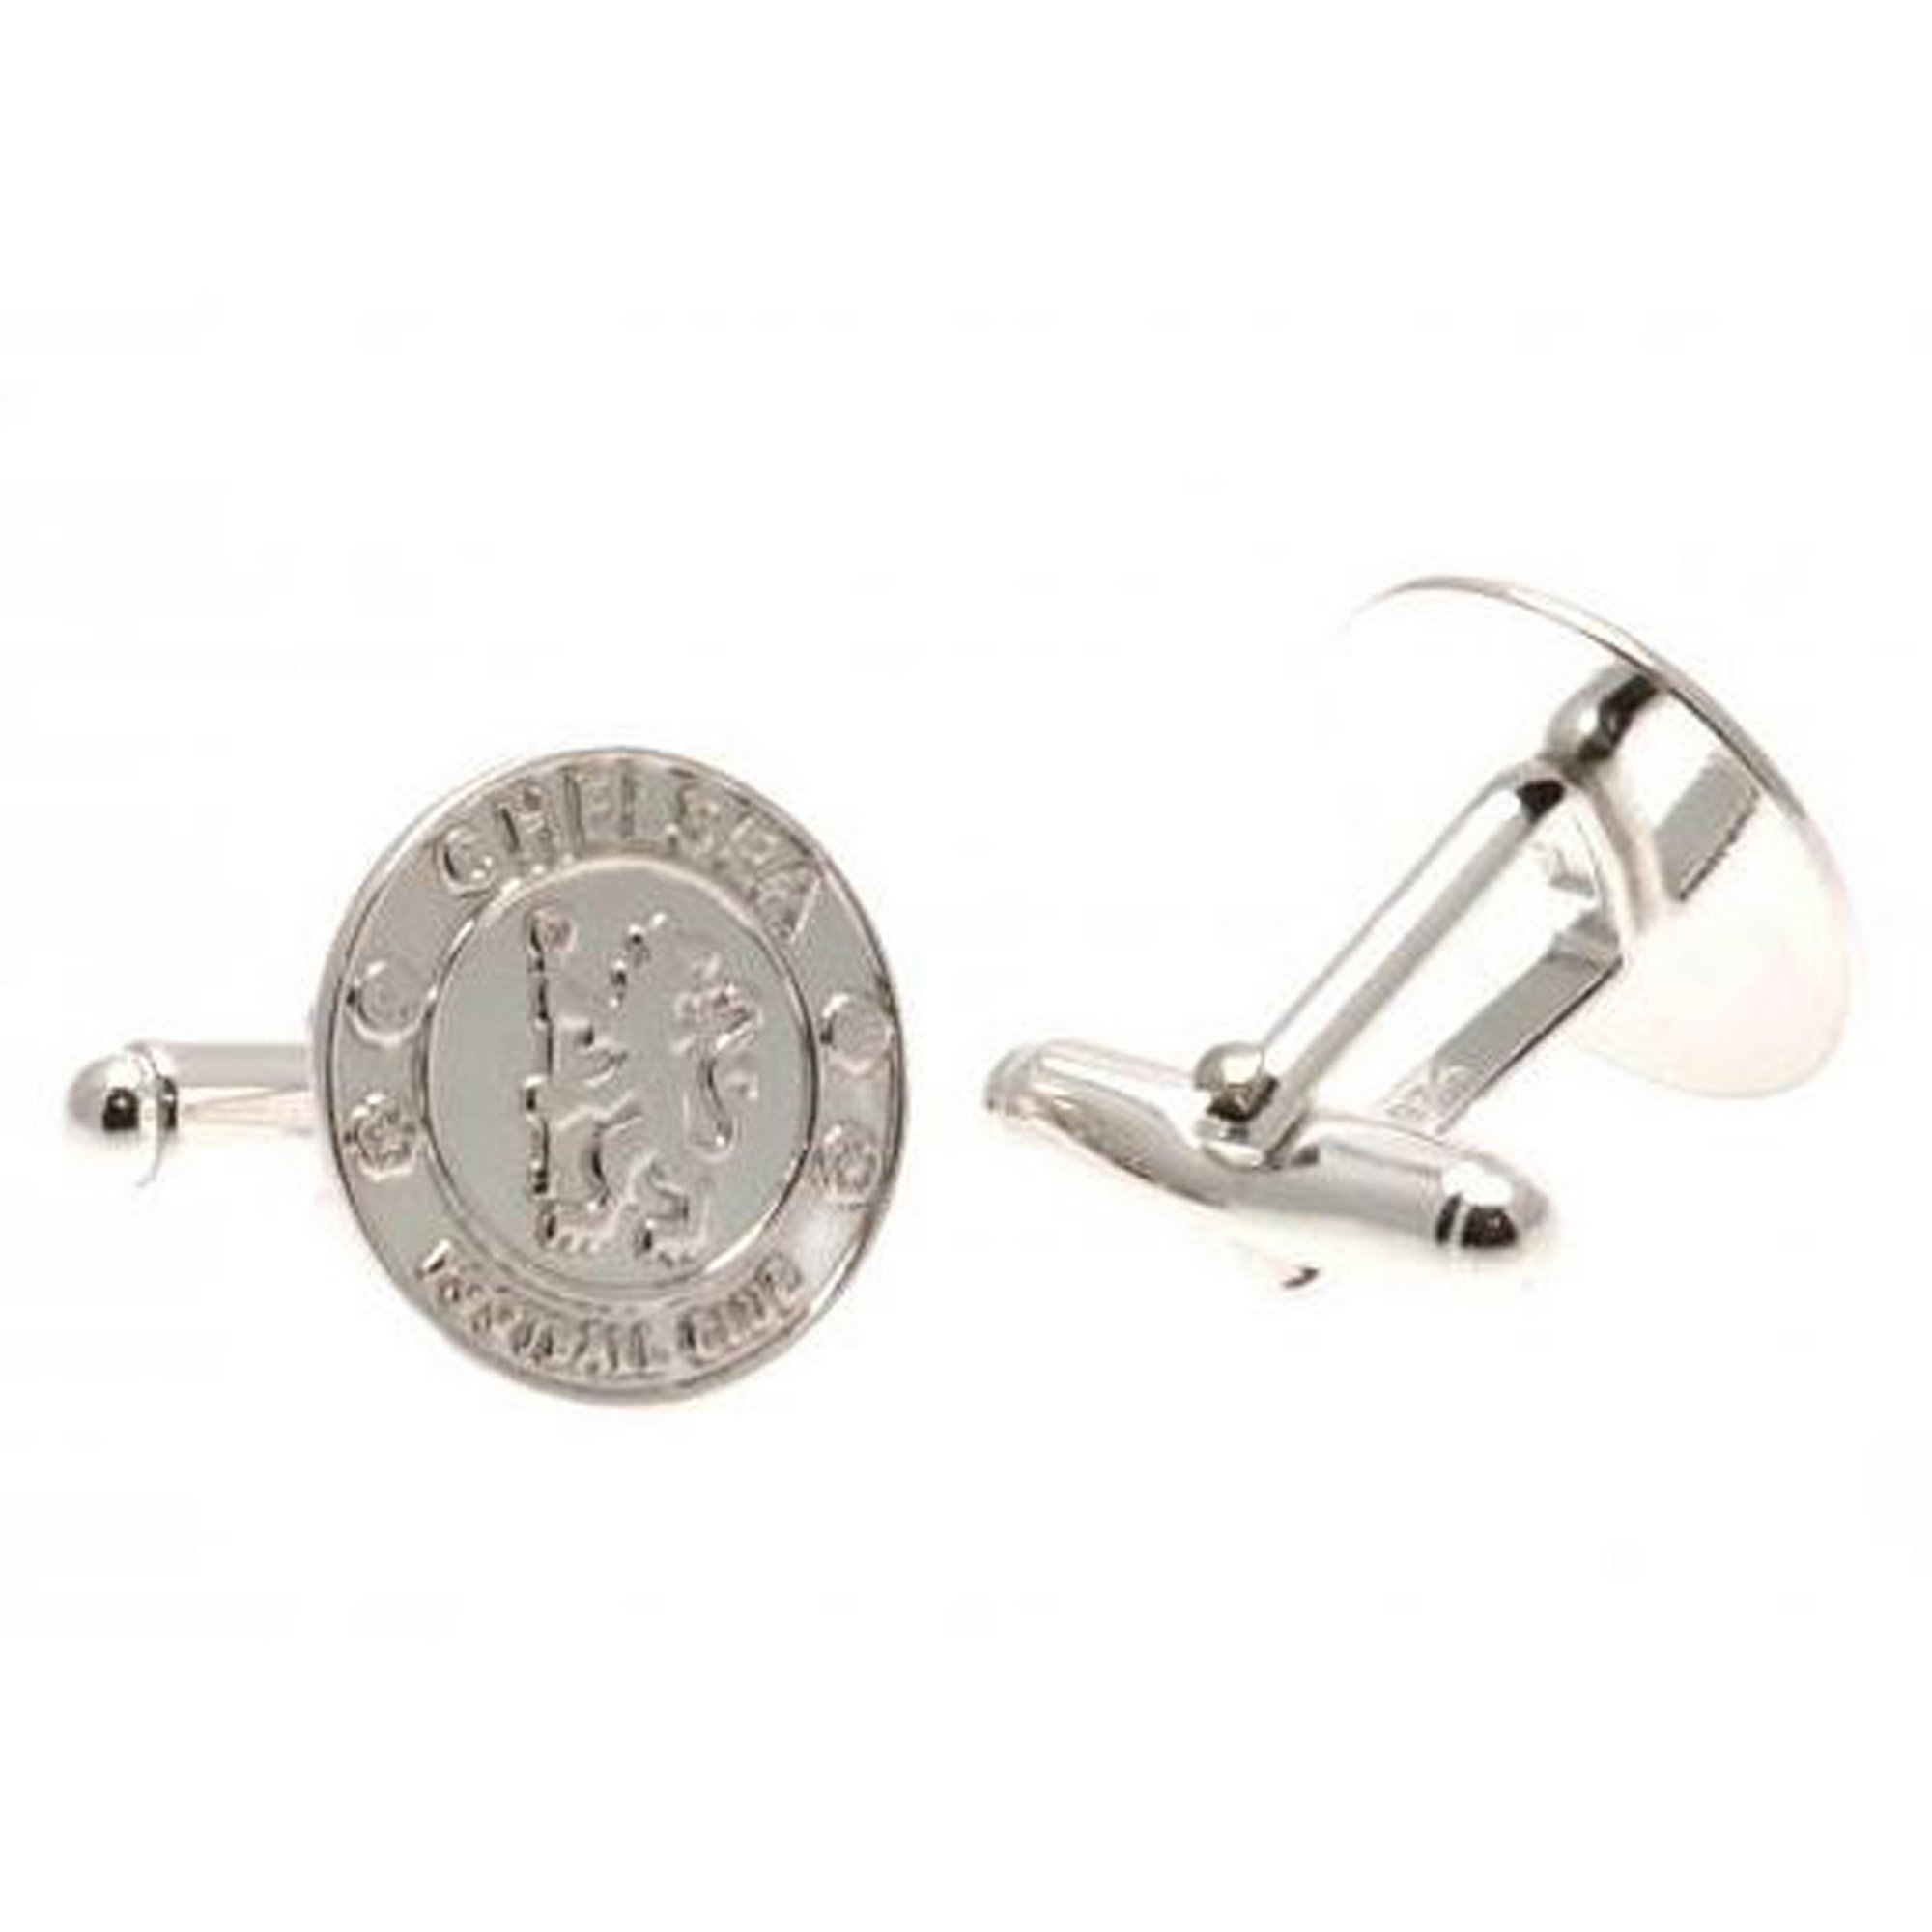 Image of Chelsea FC Sterling Silver Crest Cufflinks